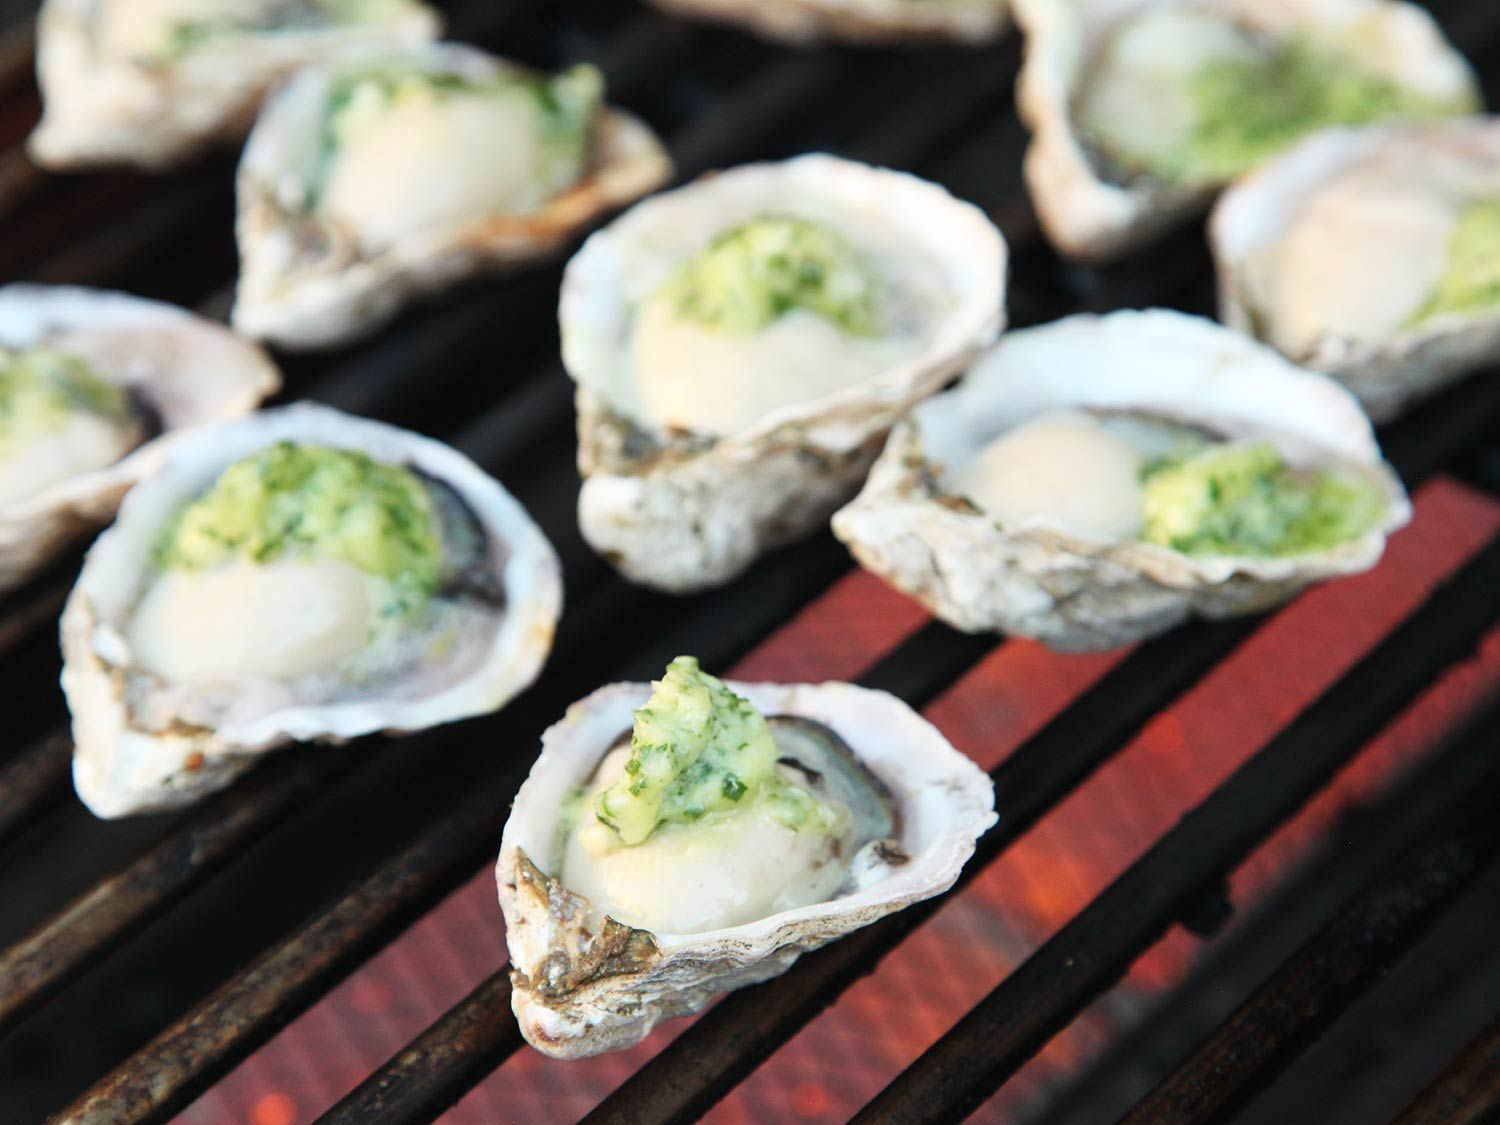 20160801-grilled-oysters-11.jpg